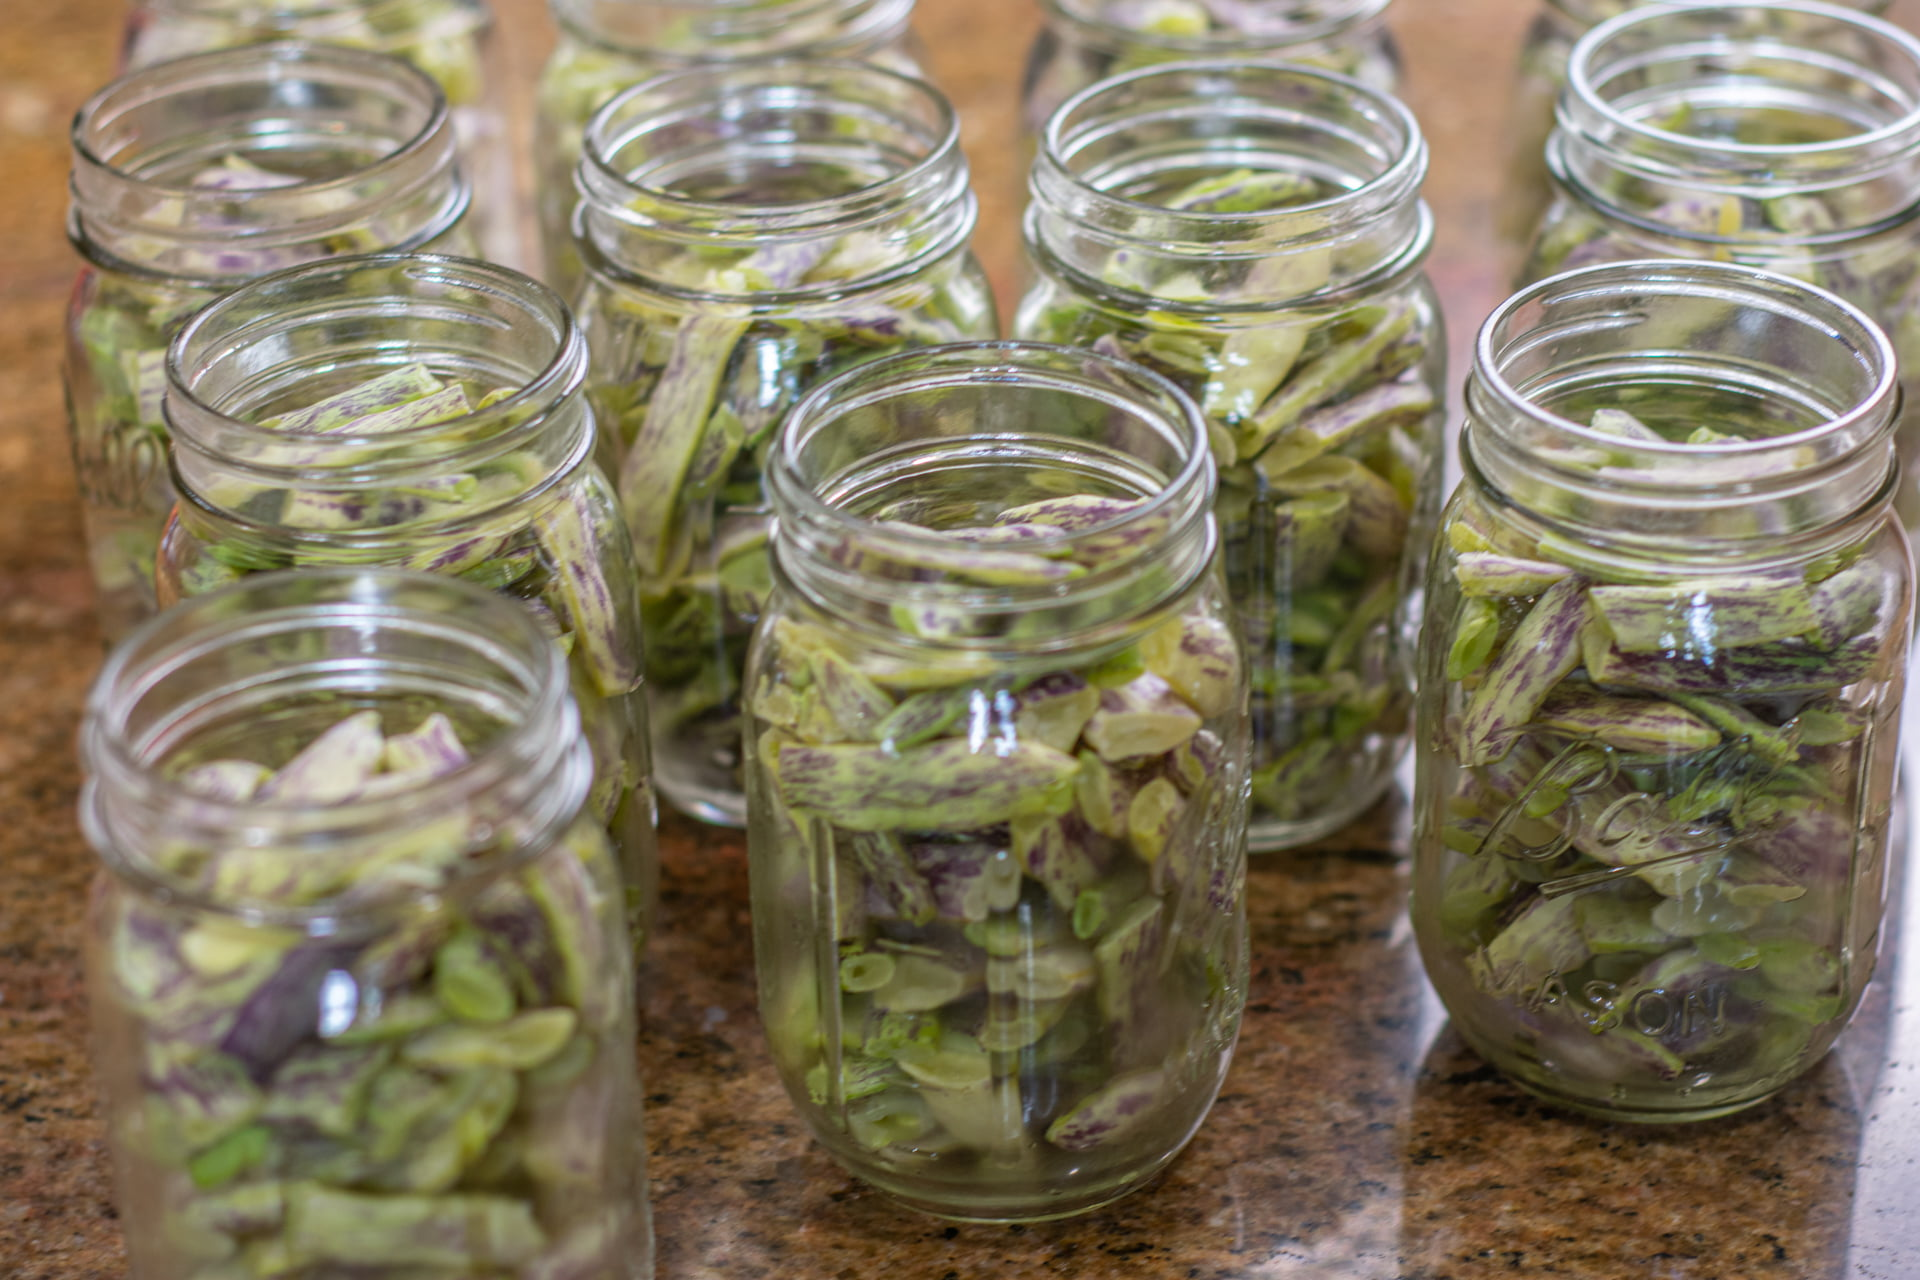 Beans in jars being prepared for canning